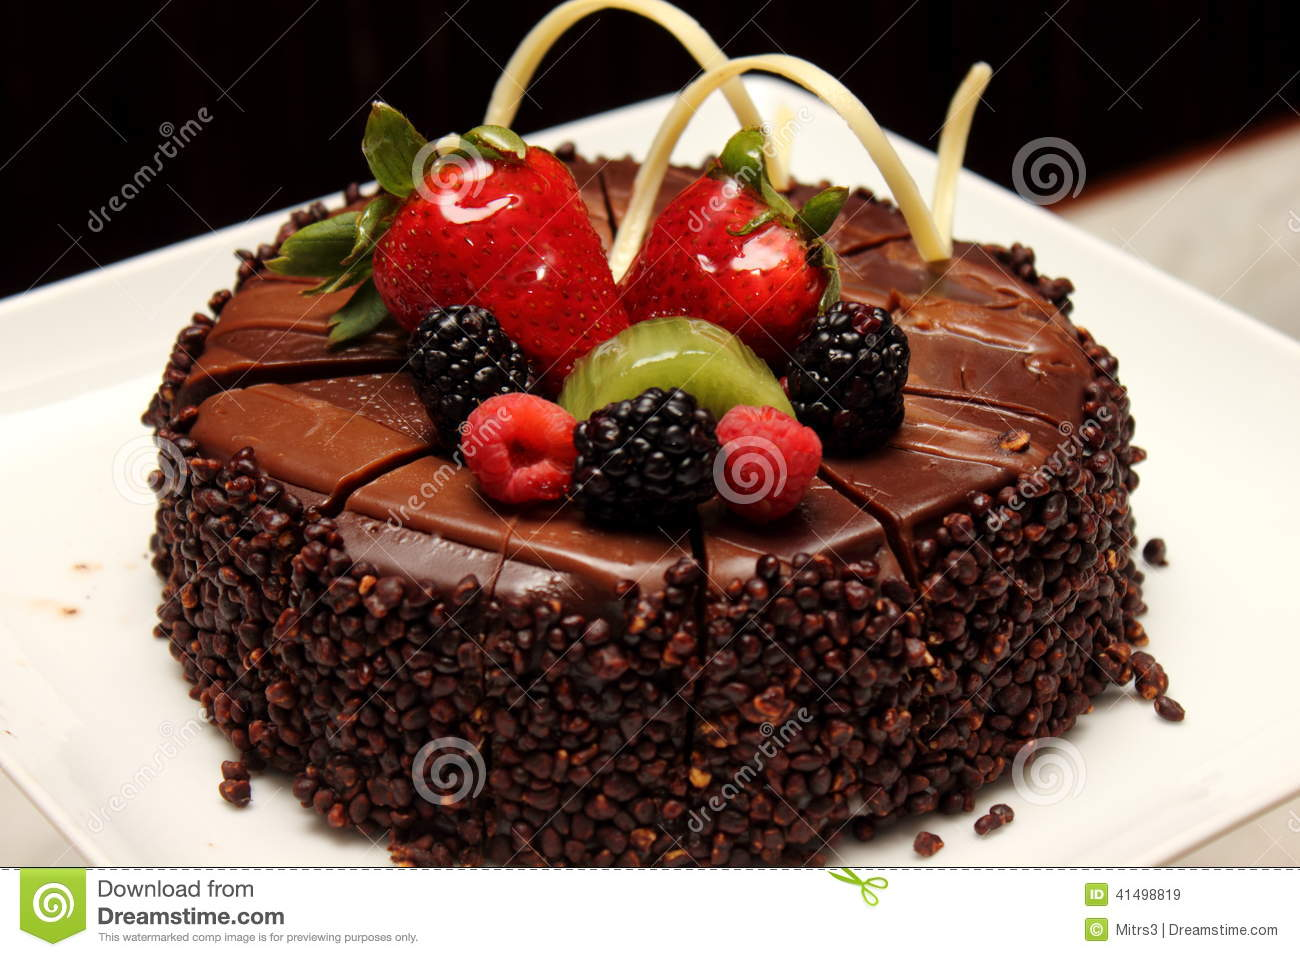 Chocolate cake with fresh fruit decoration stock image for Decoration avec des roses